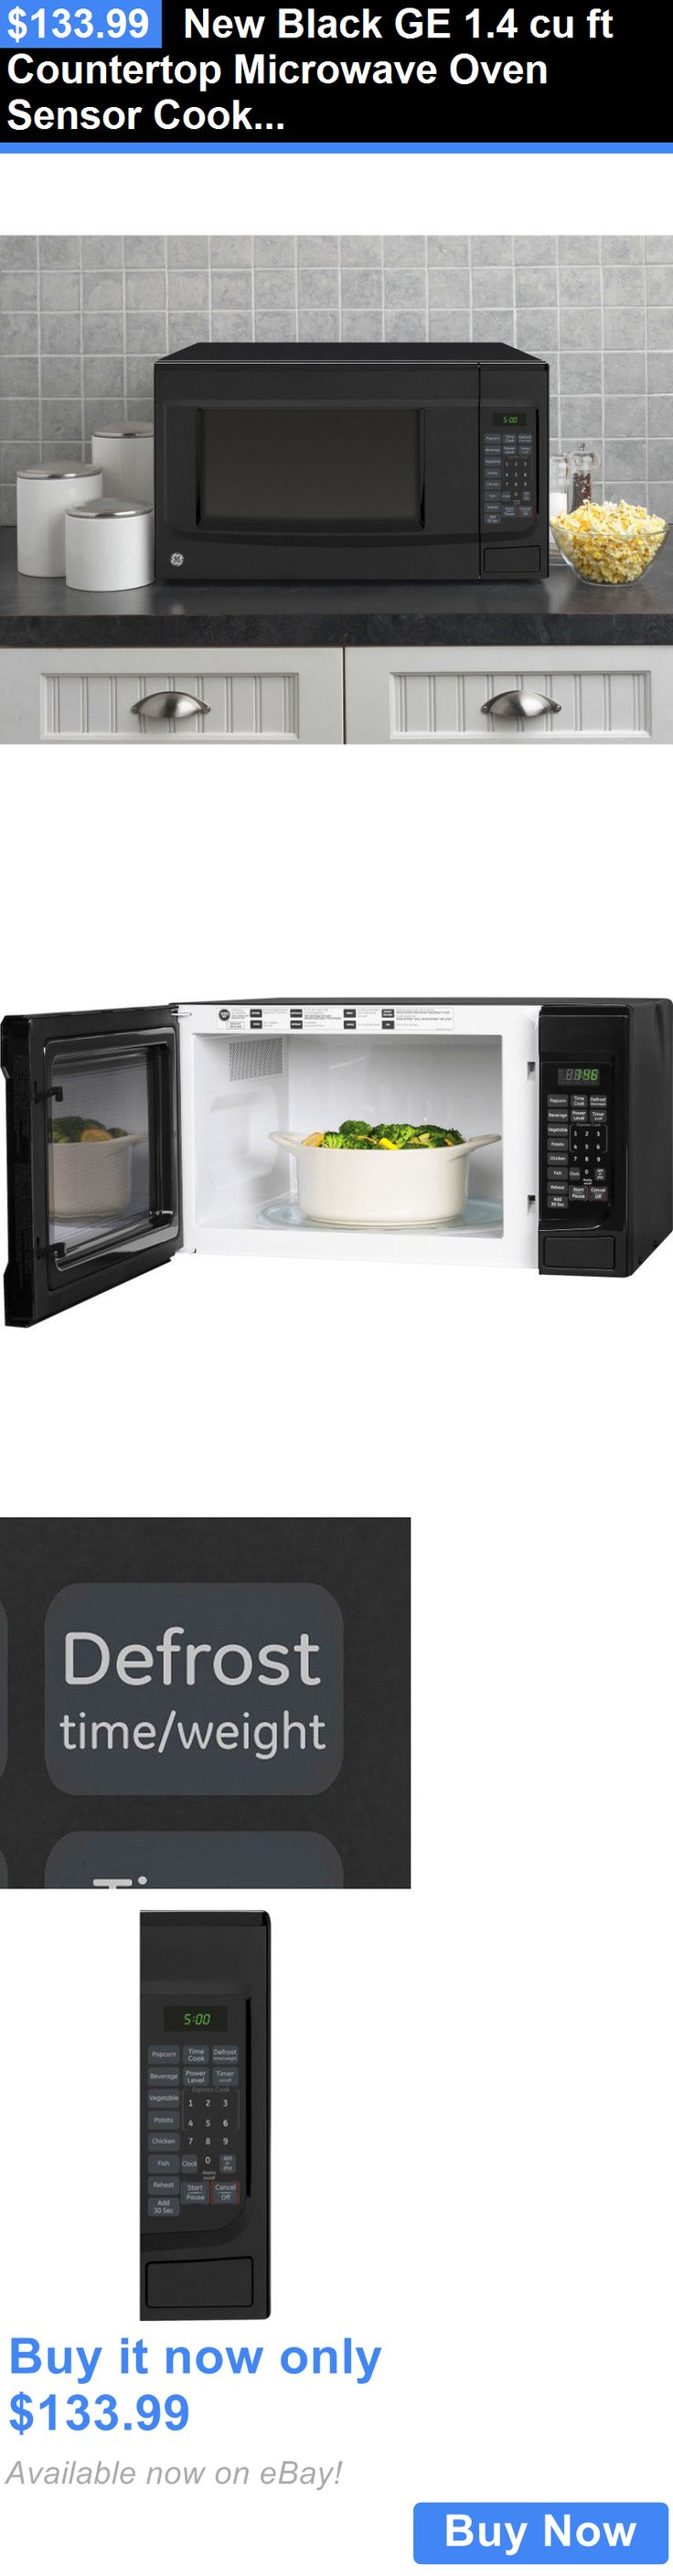 Major Appliances: New Black Ge 1.4 Cu Ft Countertop Microwave Oven Sensor Cooking BUY IT NOW ONLY: $133.99